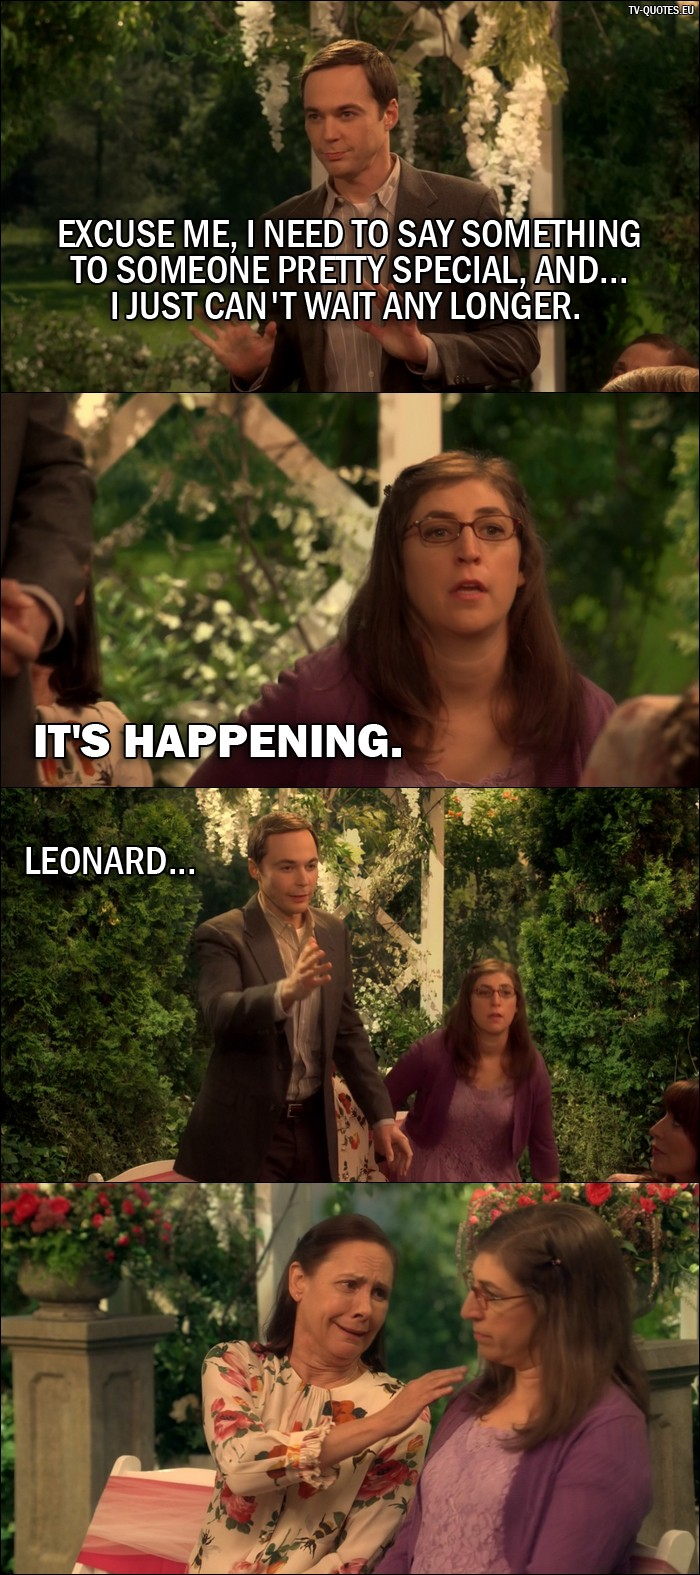 The Big Bang Theory Quote from 10x01 - Sheldon Cooper: Excuse me, I need to say something to someone pretty special, and... I just can't wait any longer. Amy Farrah Fowler: It's happening. Sheldon Cooper: Leonard...